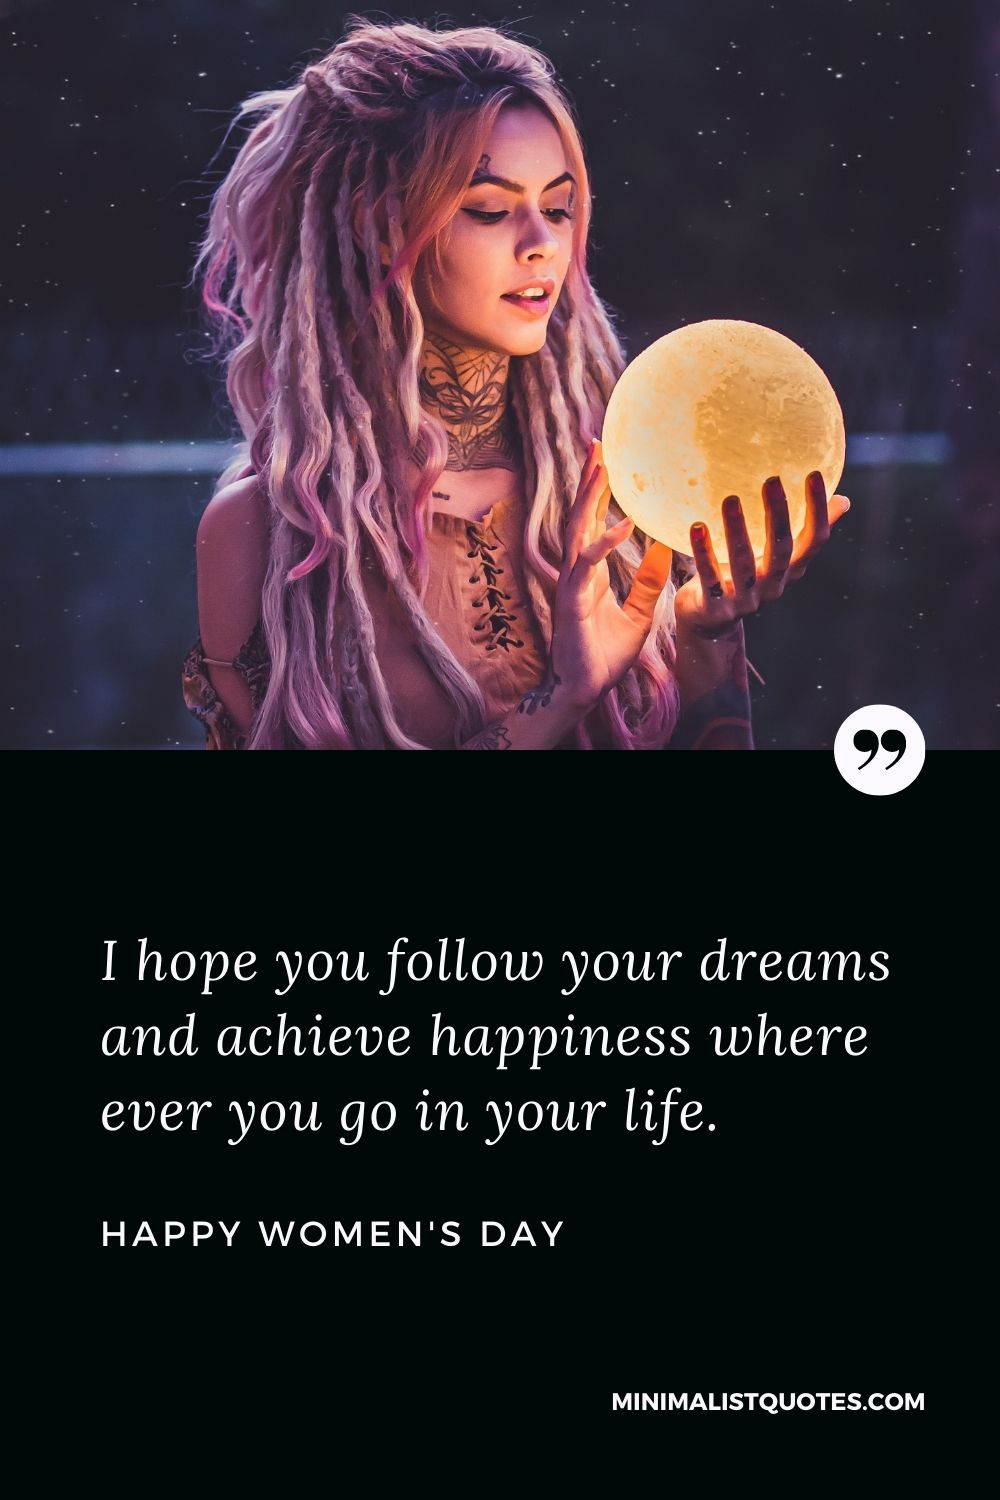 Women's Day Wish & Message: I hope you follow your dreams and achieve happiness where ever you go in your life.